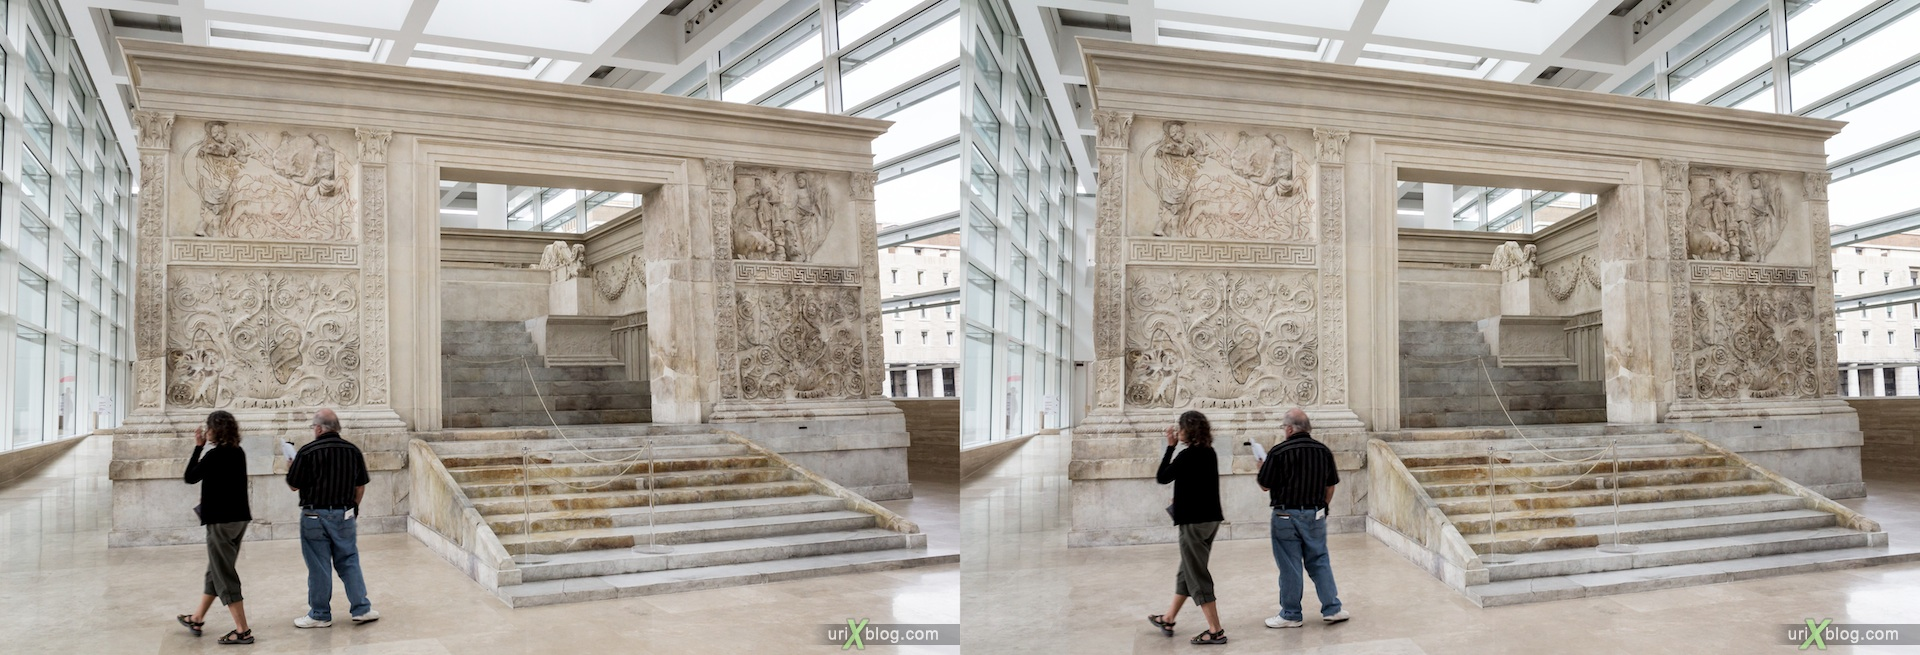 2012, Ara Pacis, Altar of Augustan Peace, Rome, Italy, Europe, 3D, stereo pair, cross-eyed, crossview, cross view stereo pair